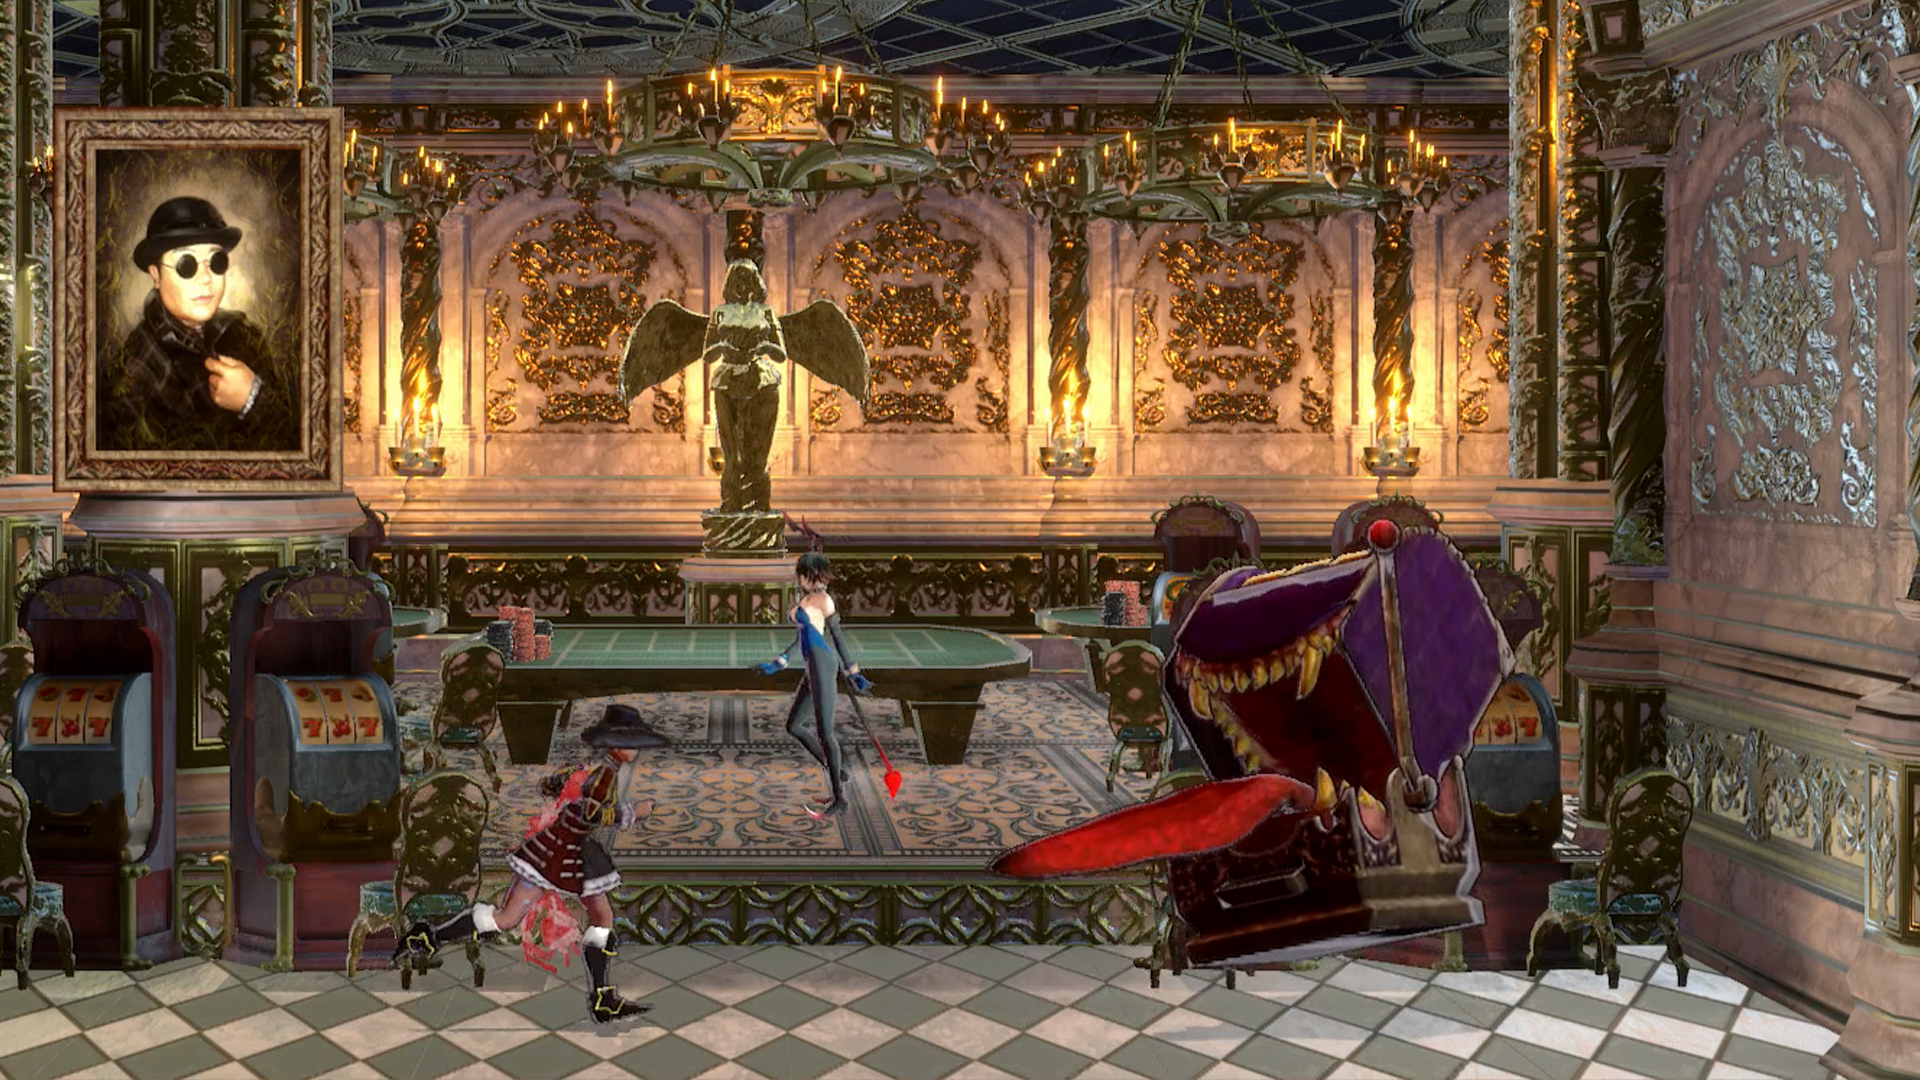 Bloodstained: Ritual of the Night Millionaire's Key, Millionaire's Room, and Millionaire's Bane location